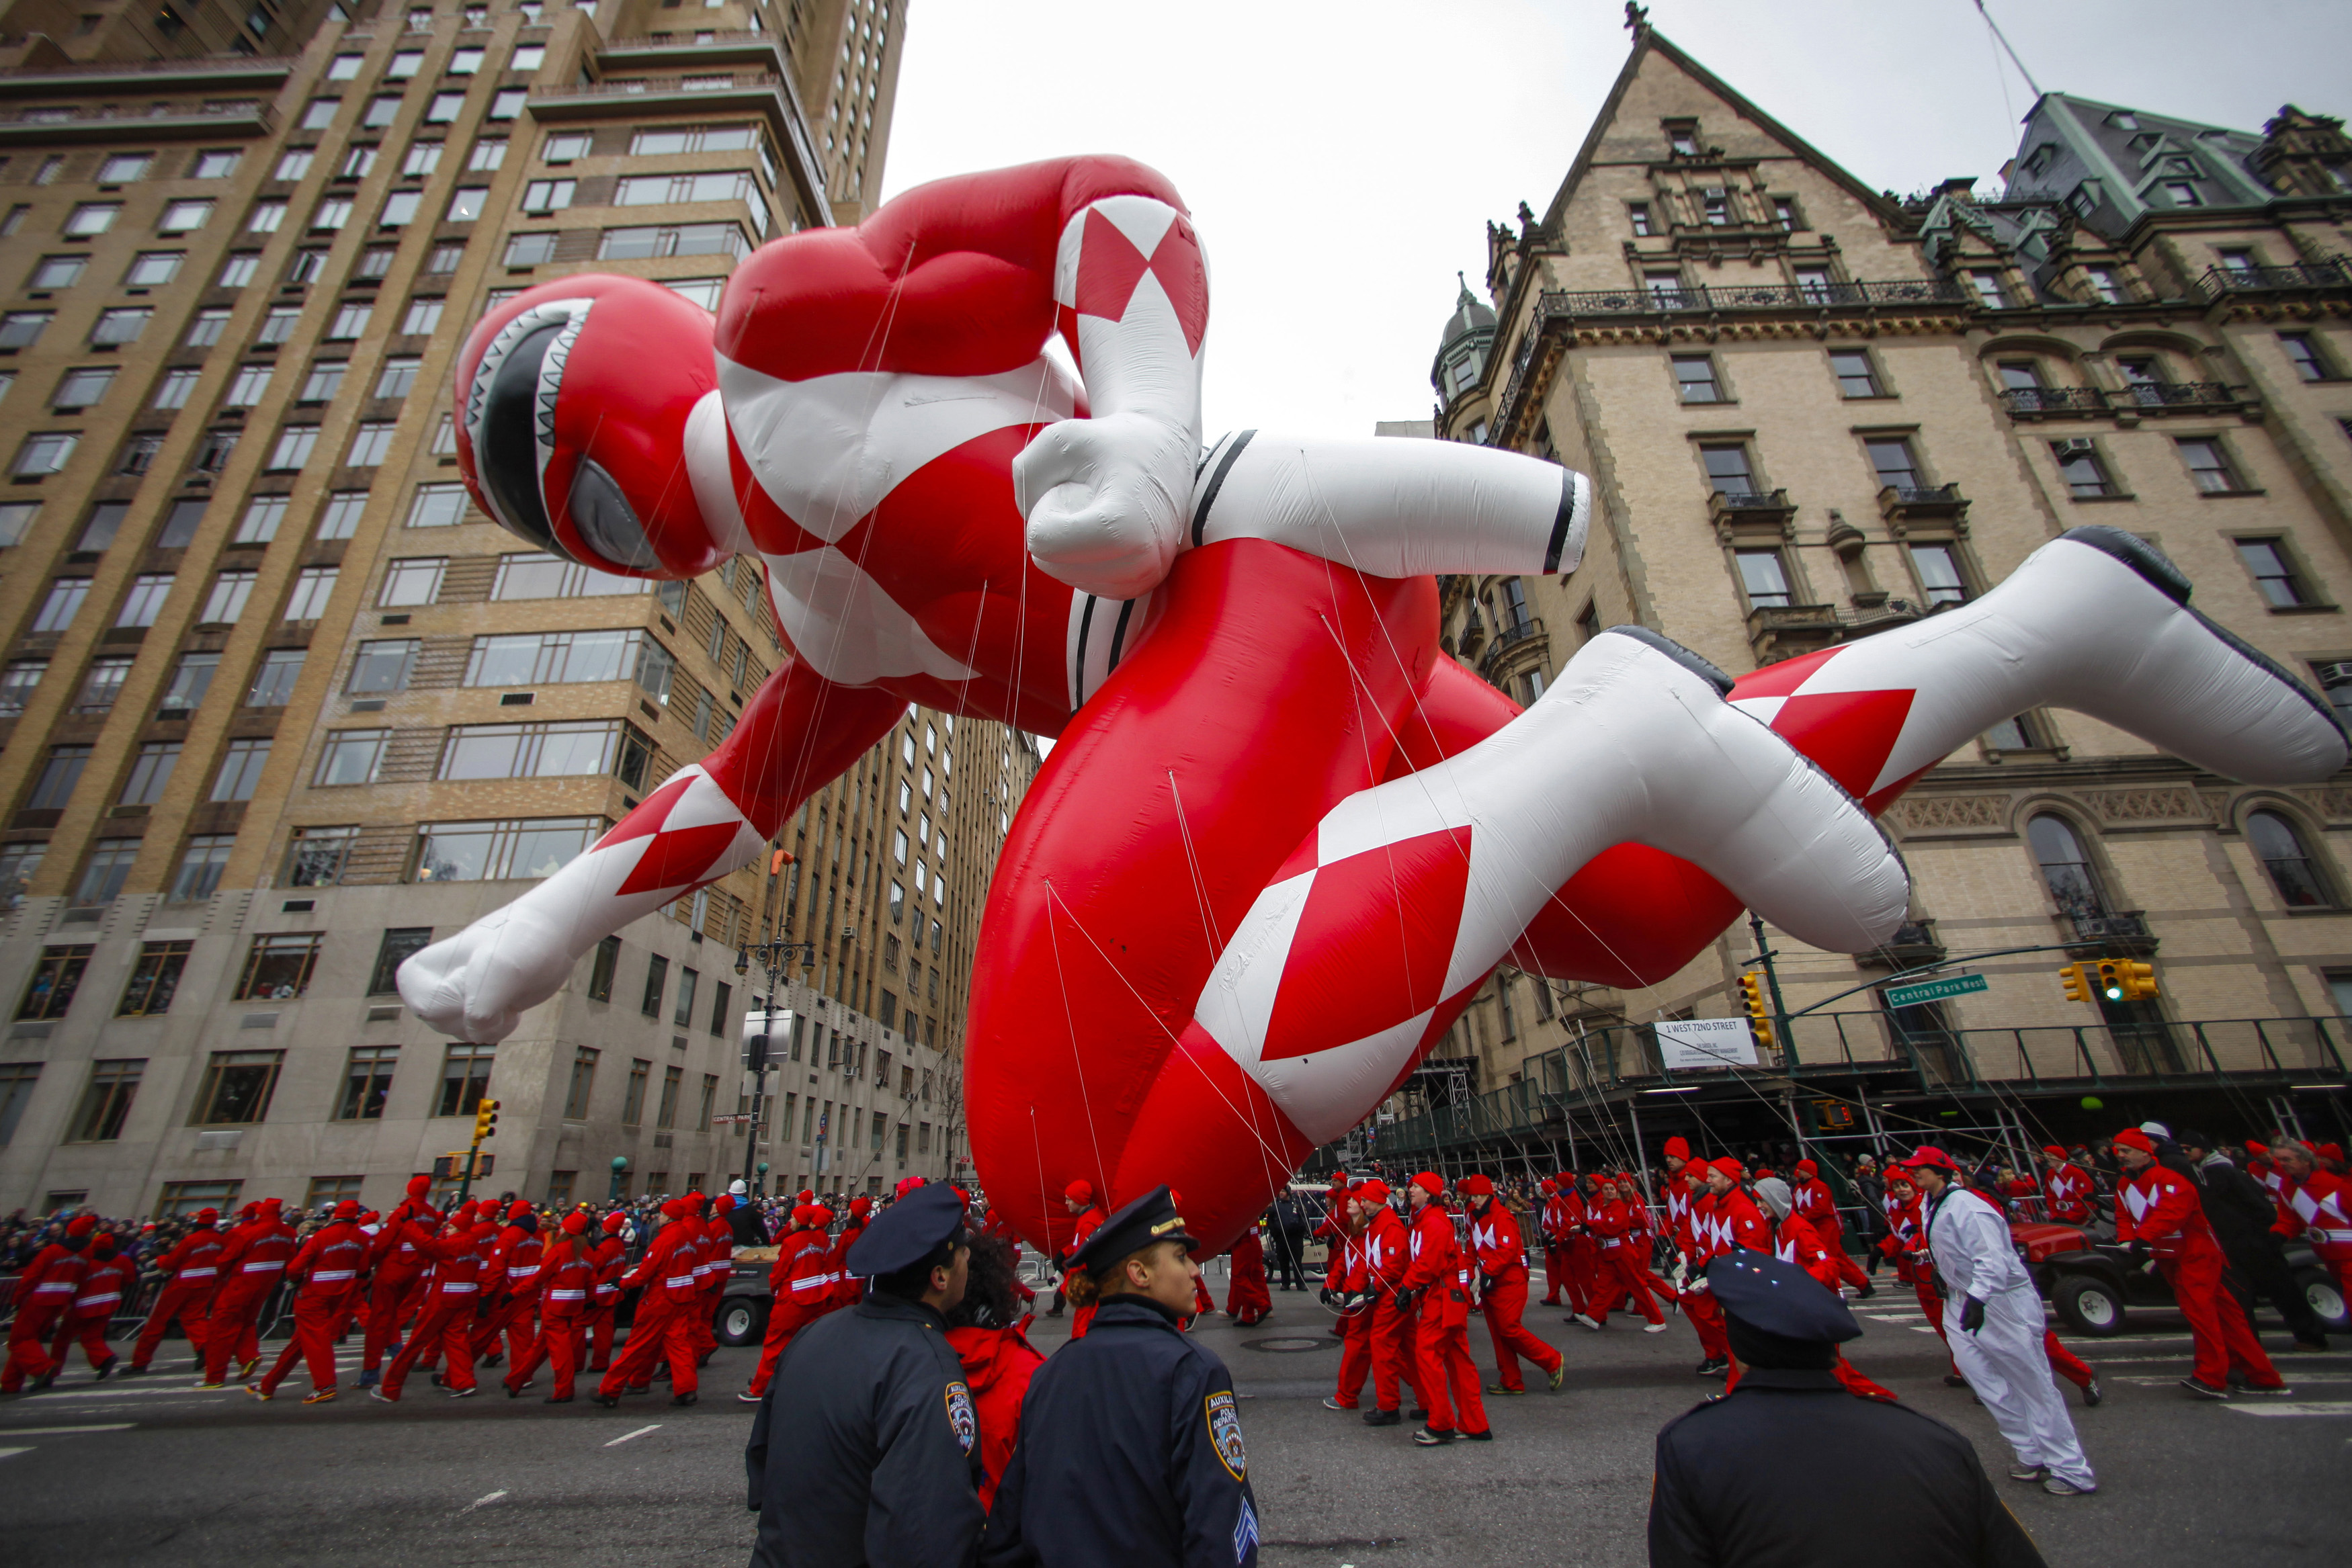 Red Ranger Balloon To Appear In Macy S 89th Annual Parade